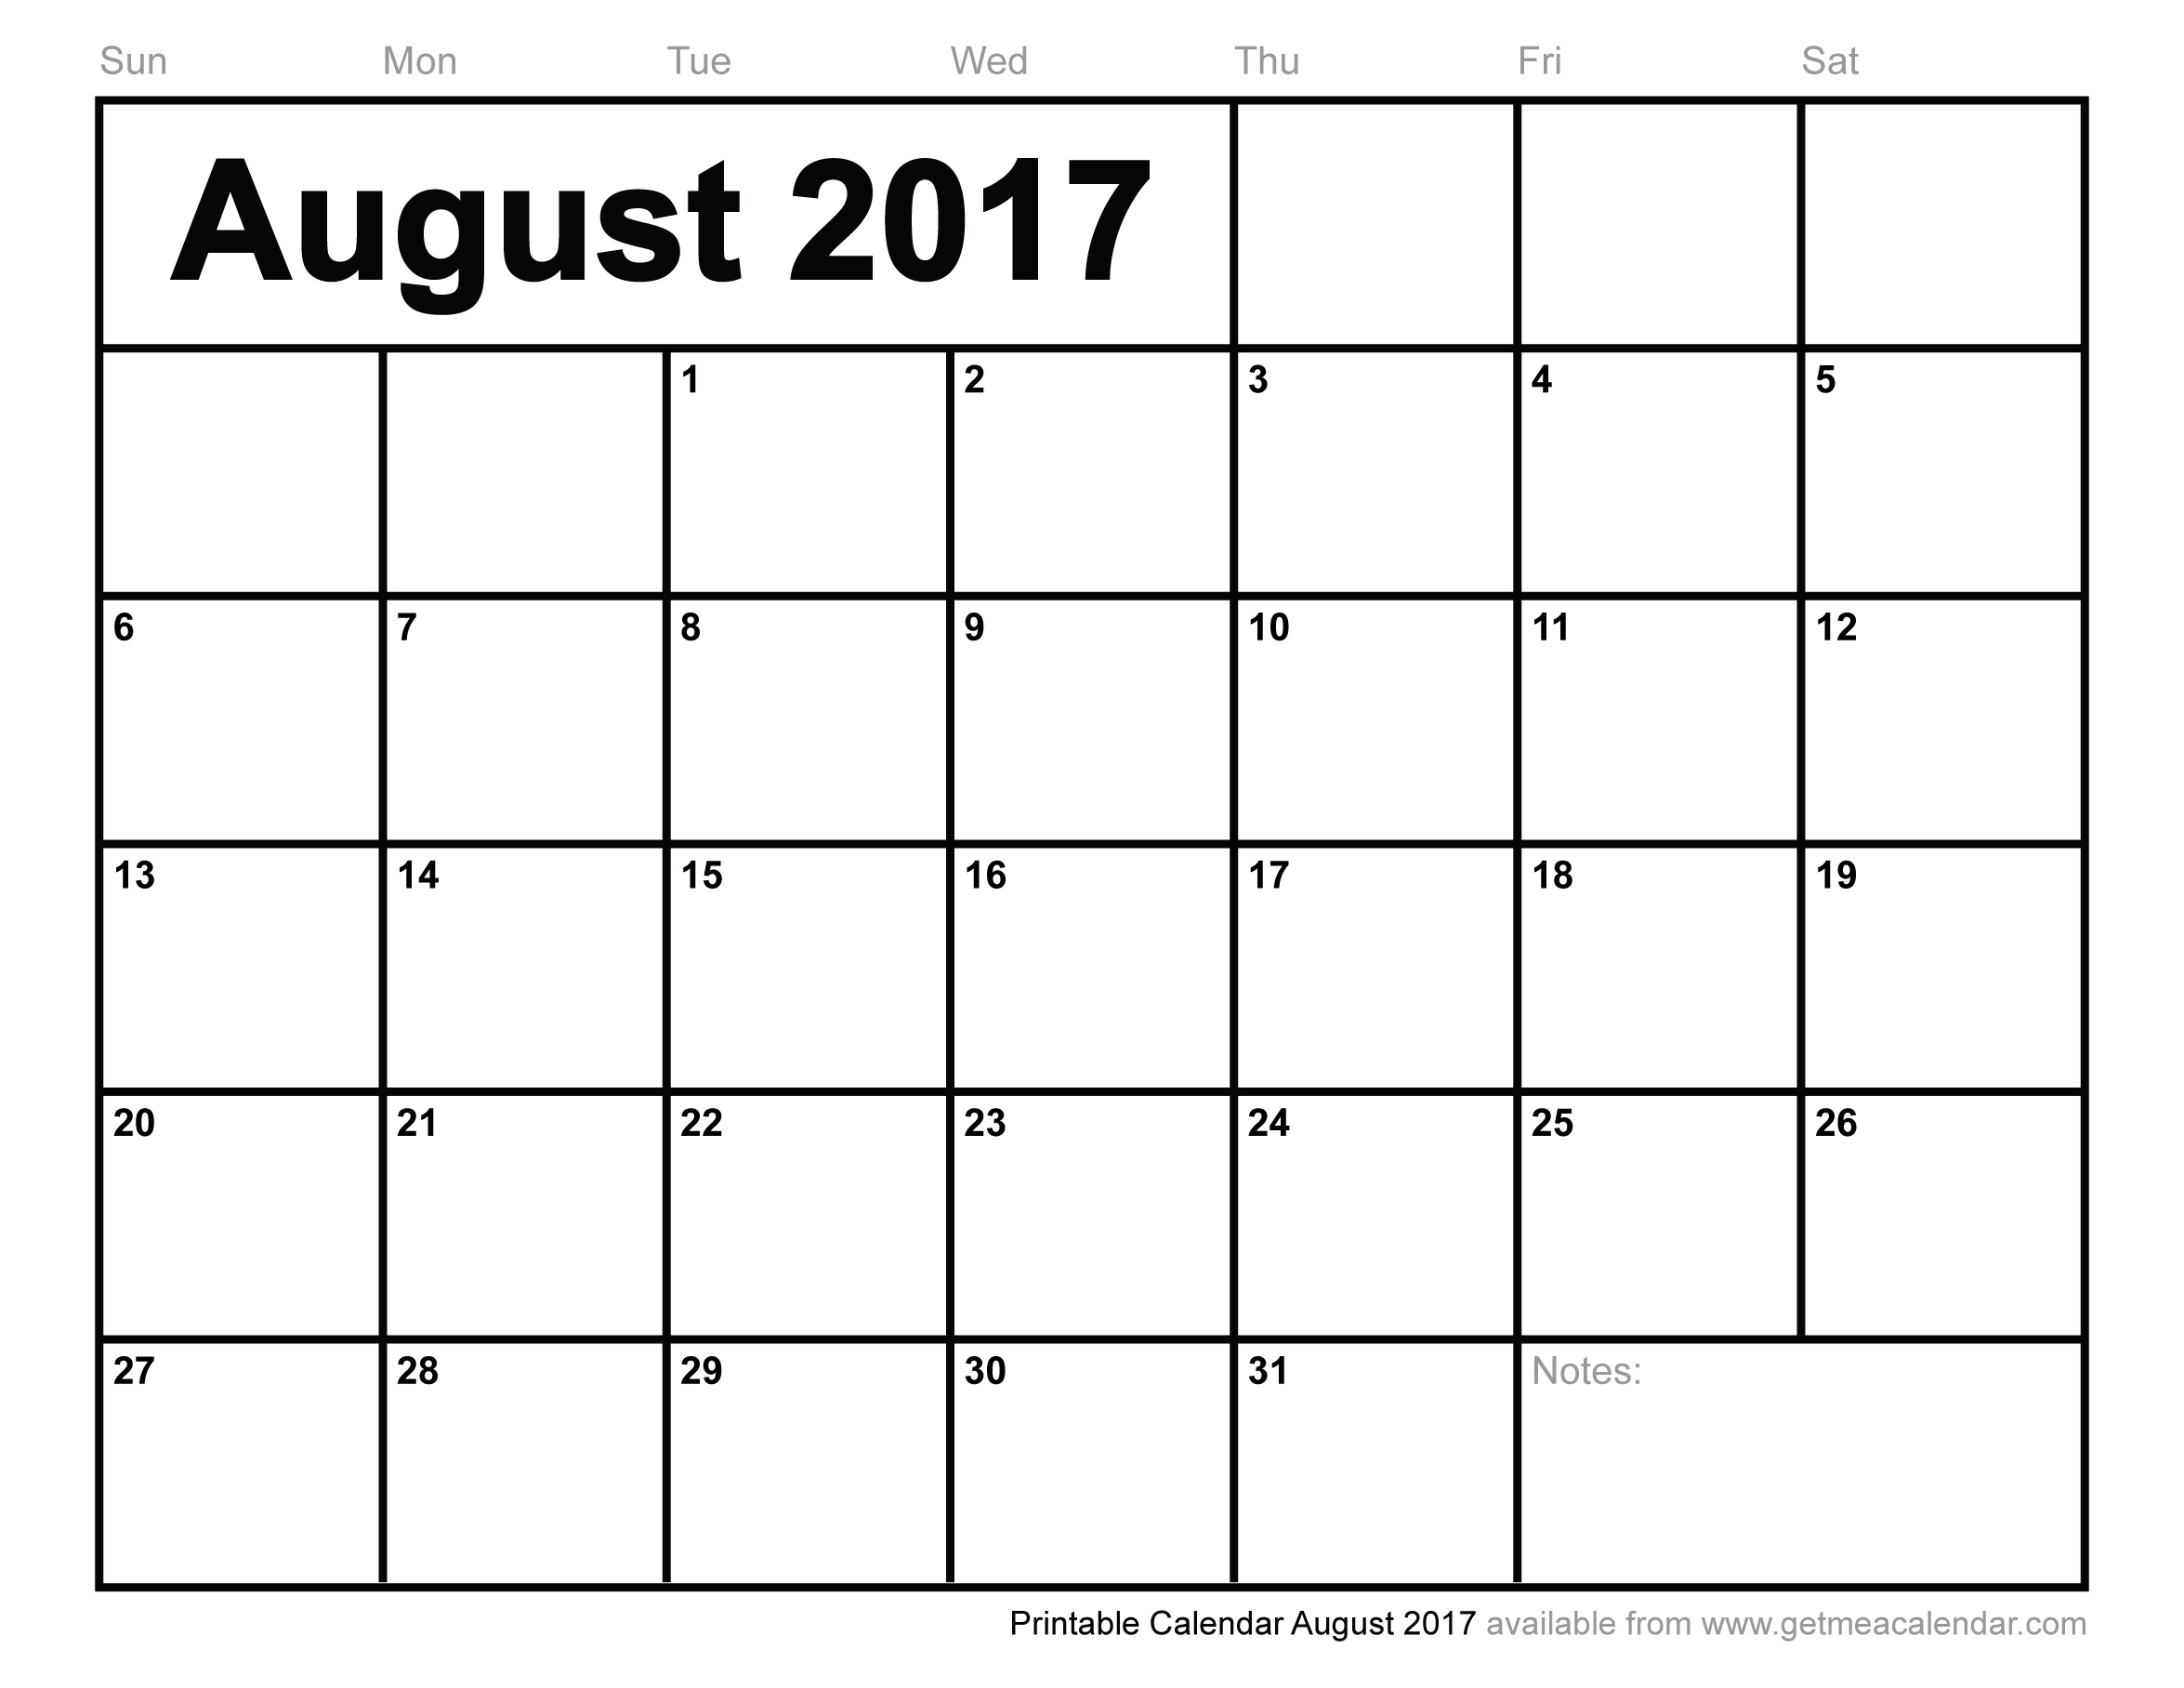 August 2017 Printable CalendarPrintables World | Printables World